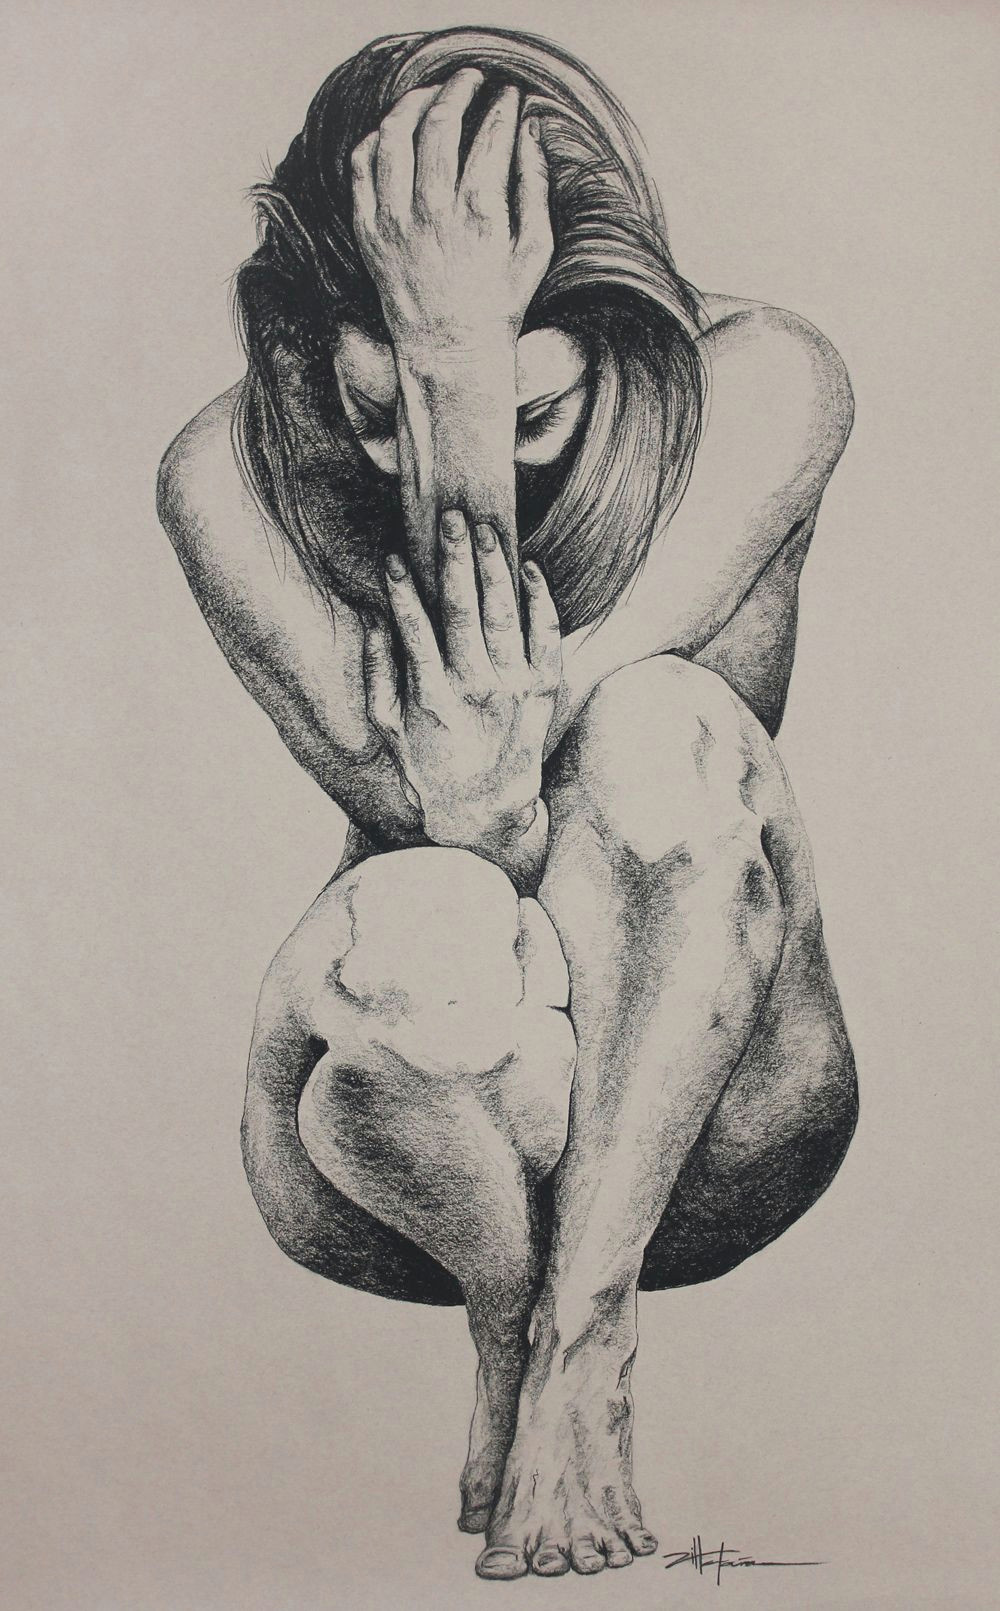 eve paradise lost aka crouching woman original art nude art female charcoal graphite drawing eve paradise lost aka crouching woman by marcy ann